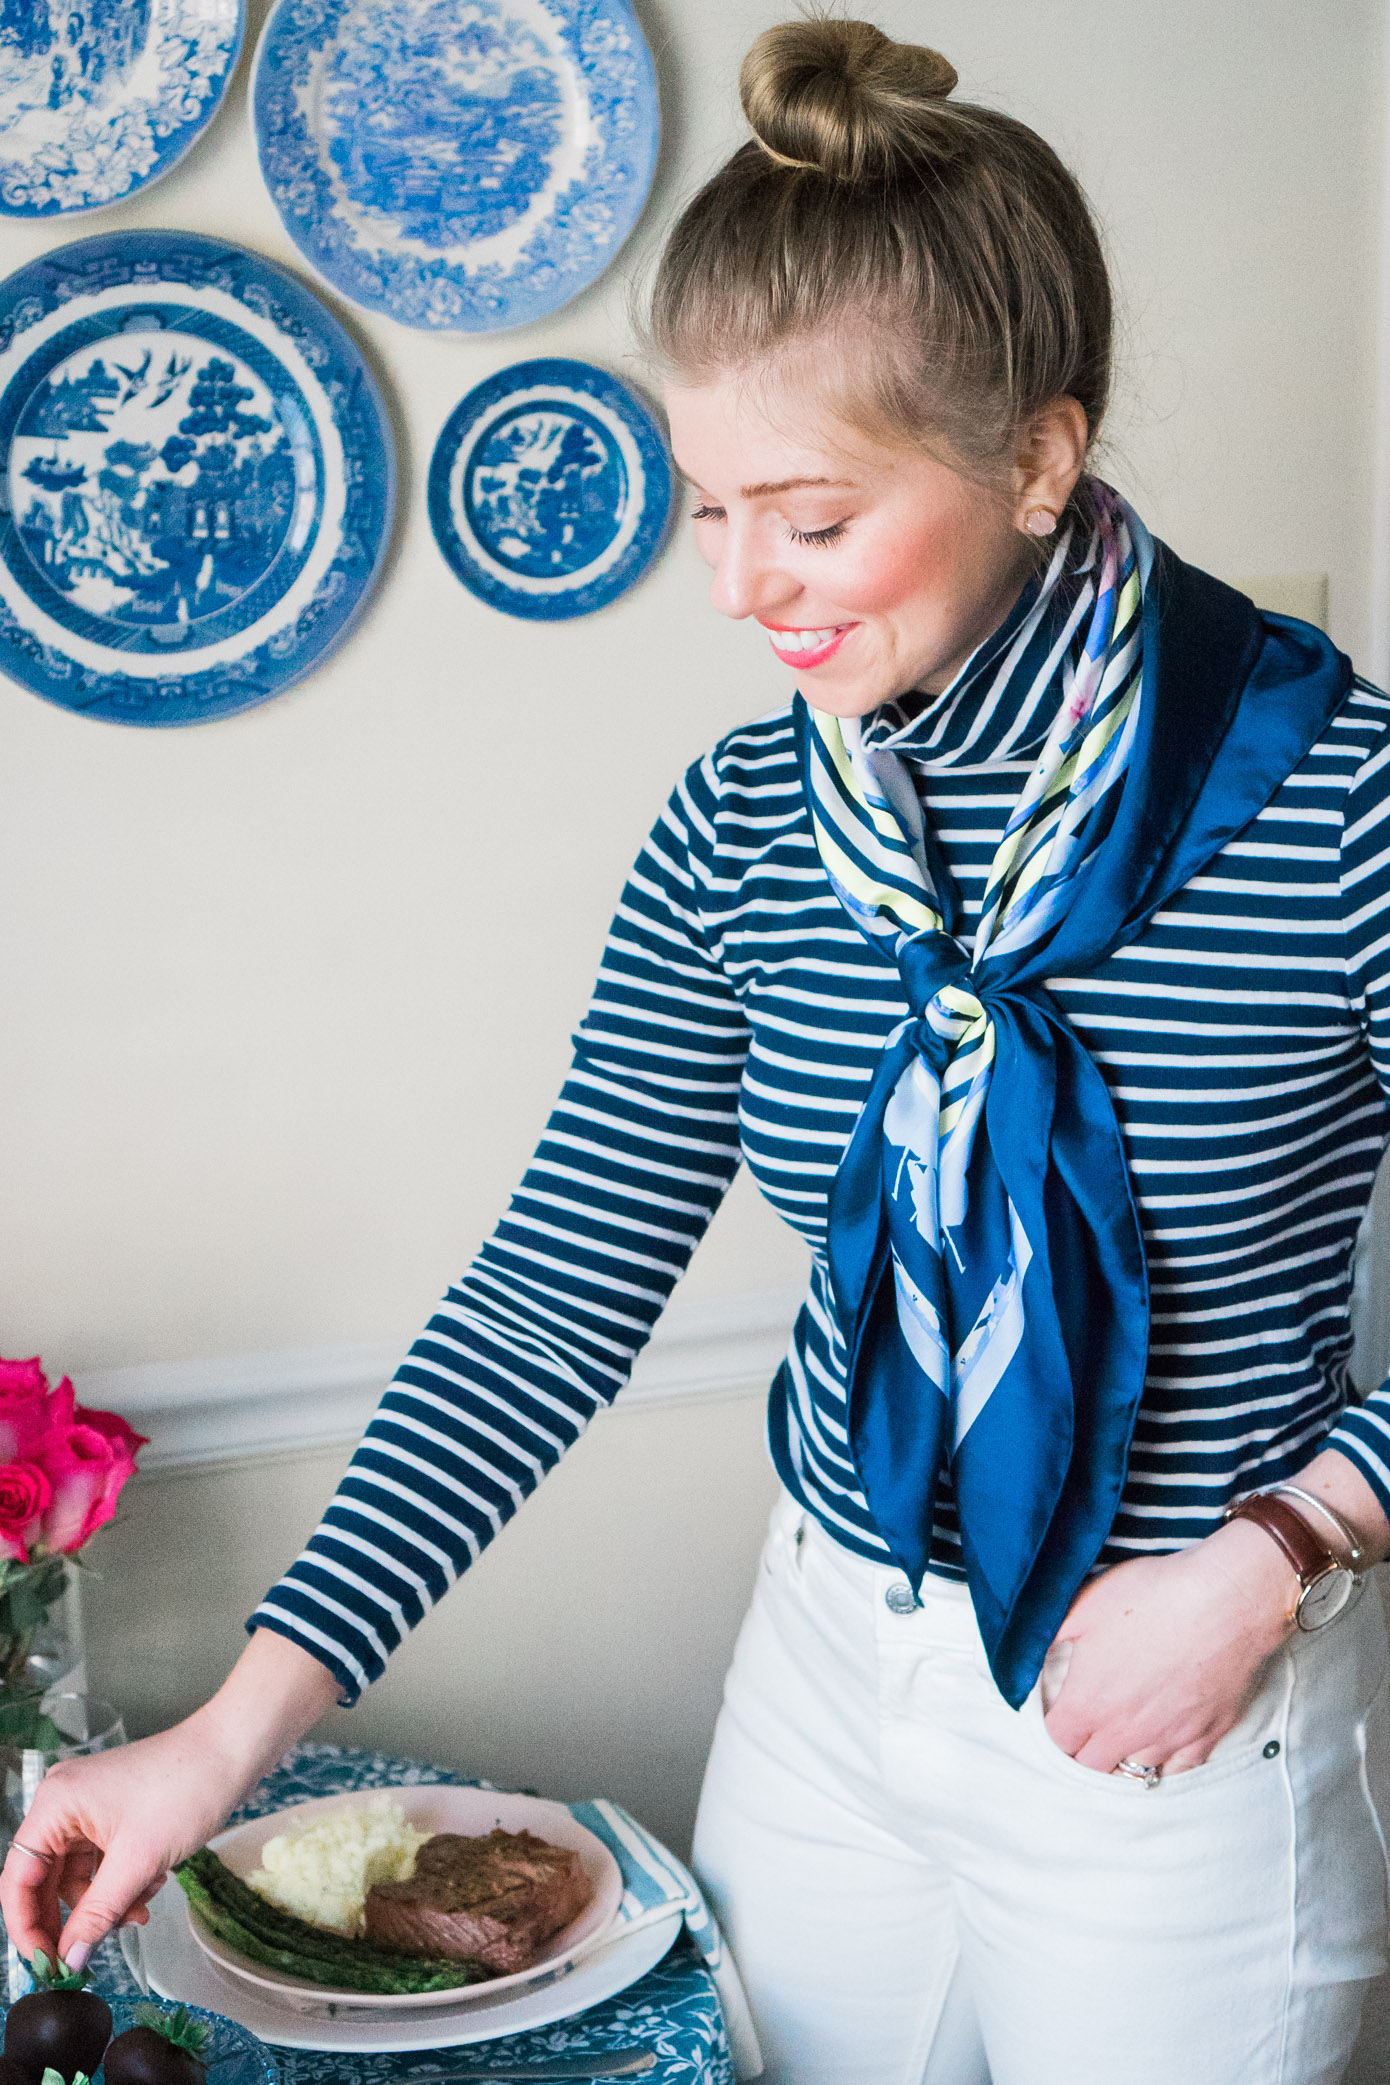 Valentine's Day Dinner at Home | Valentine's Day Dinner for Two | Louella Reese Life & Style Blog